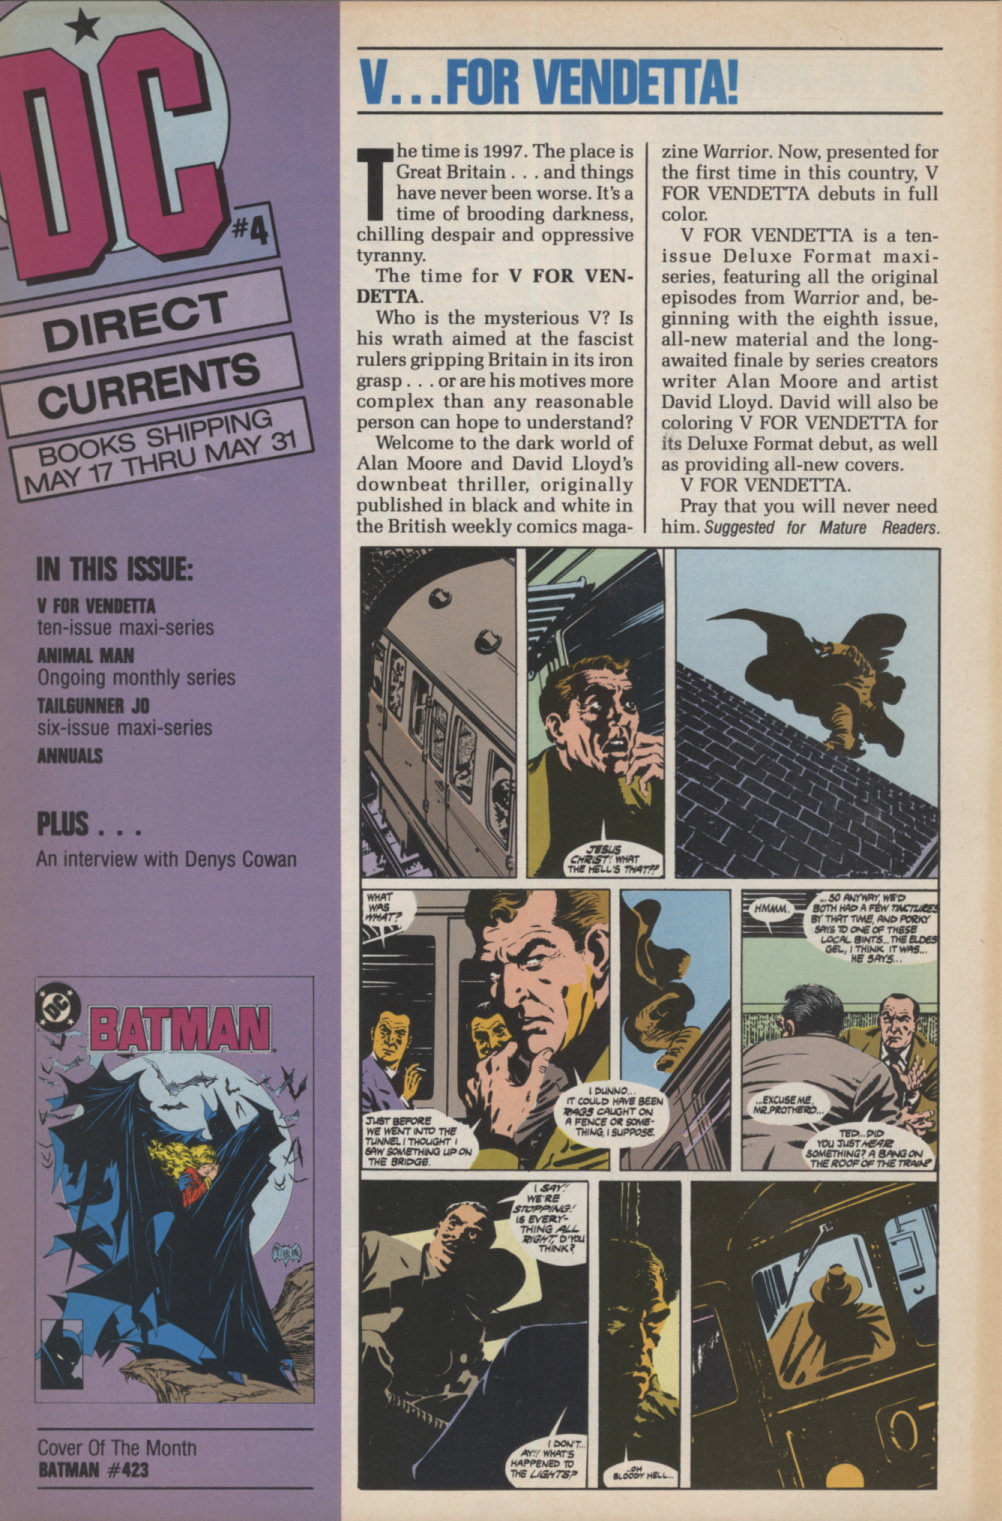 Time Capsule: DC Direct Currents 4, April 1988